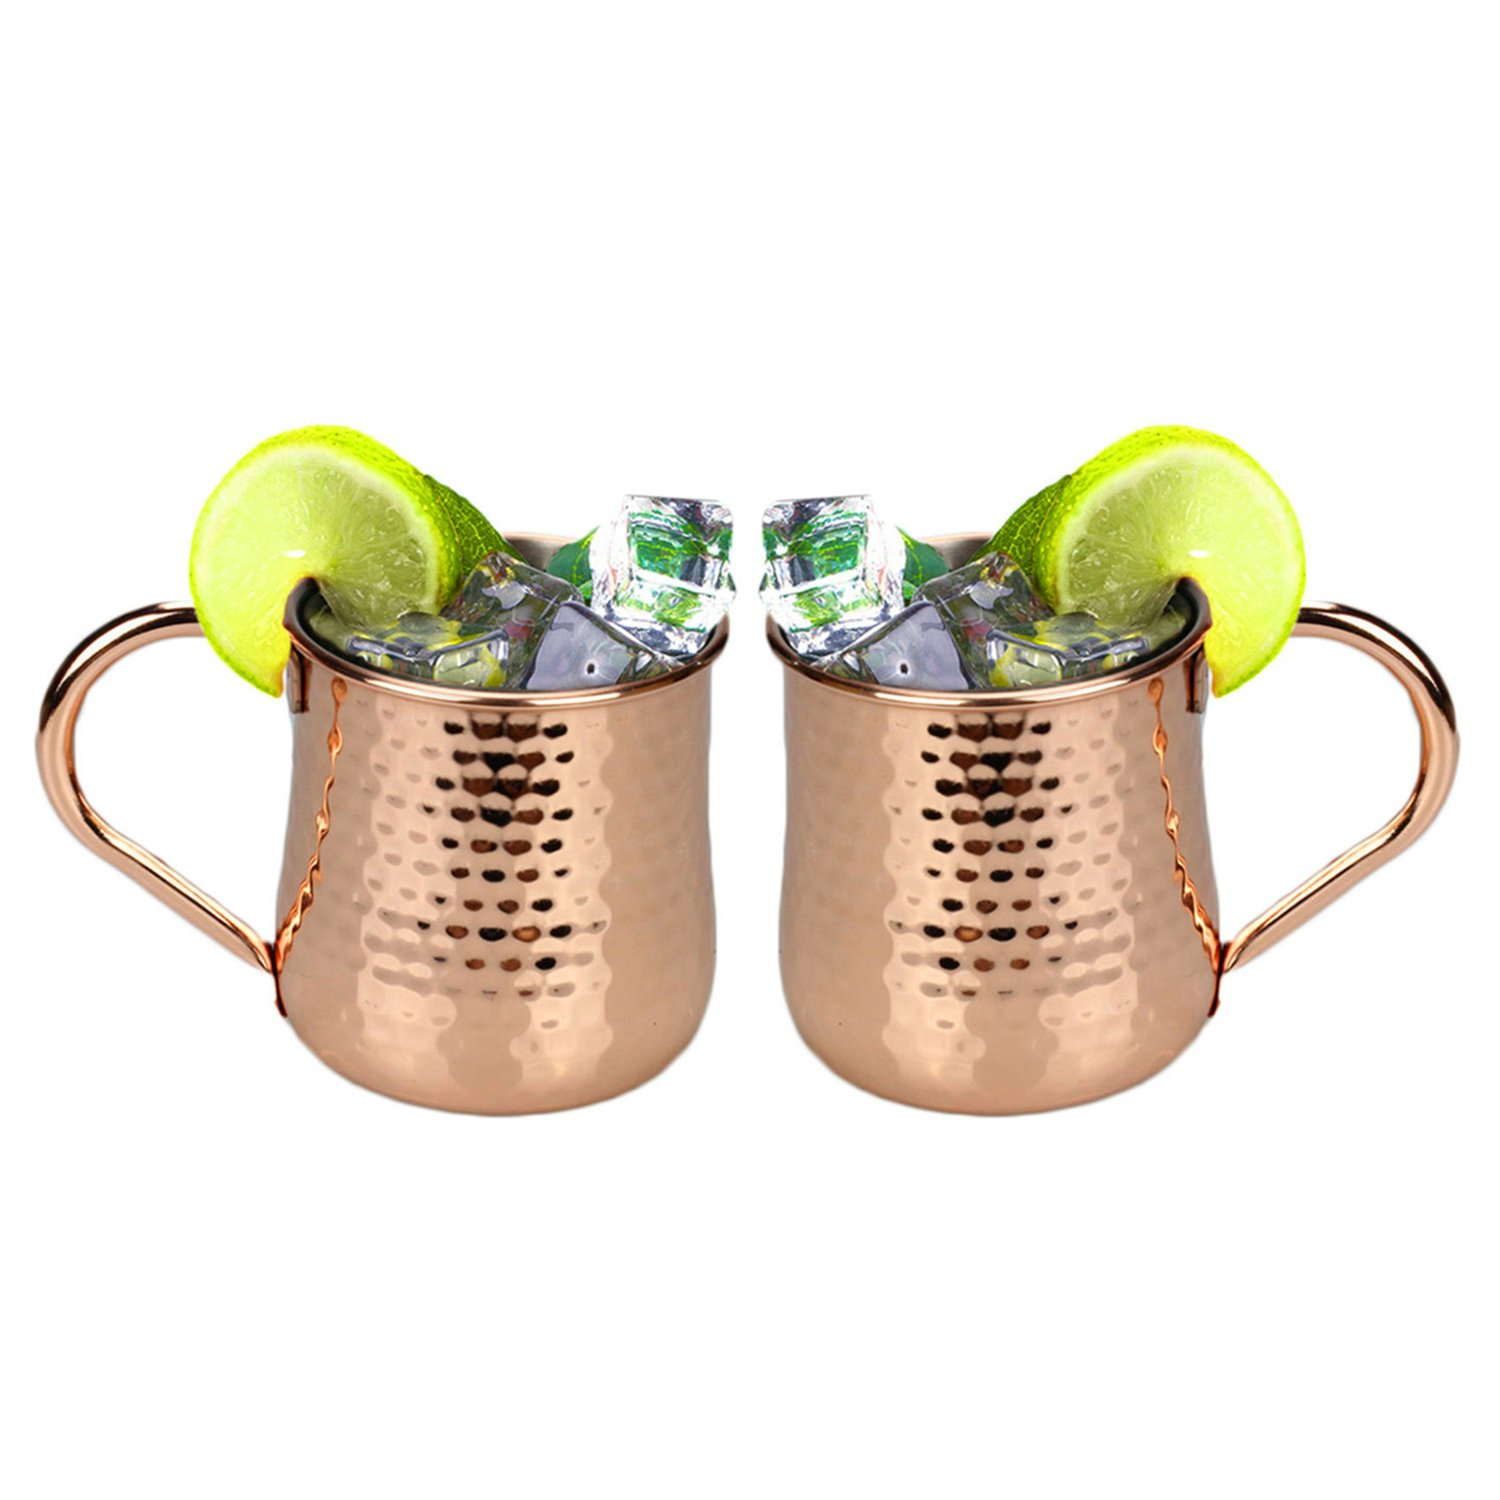 HUAYIN Pure Copper Moscow Mule Cup, no coating, inside nickel, hammered copper mugs, ideal for keeping all chilled drink dazzling to entertain and bar or at home, great bar gift (450ML)